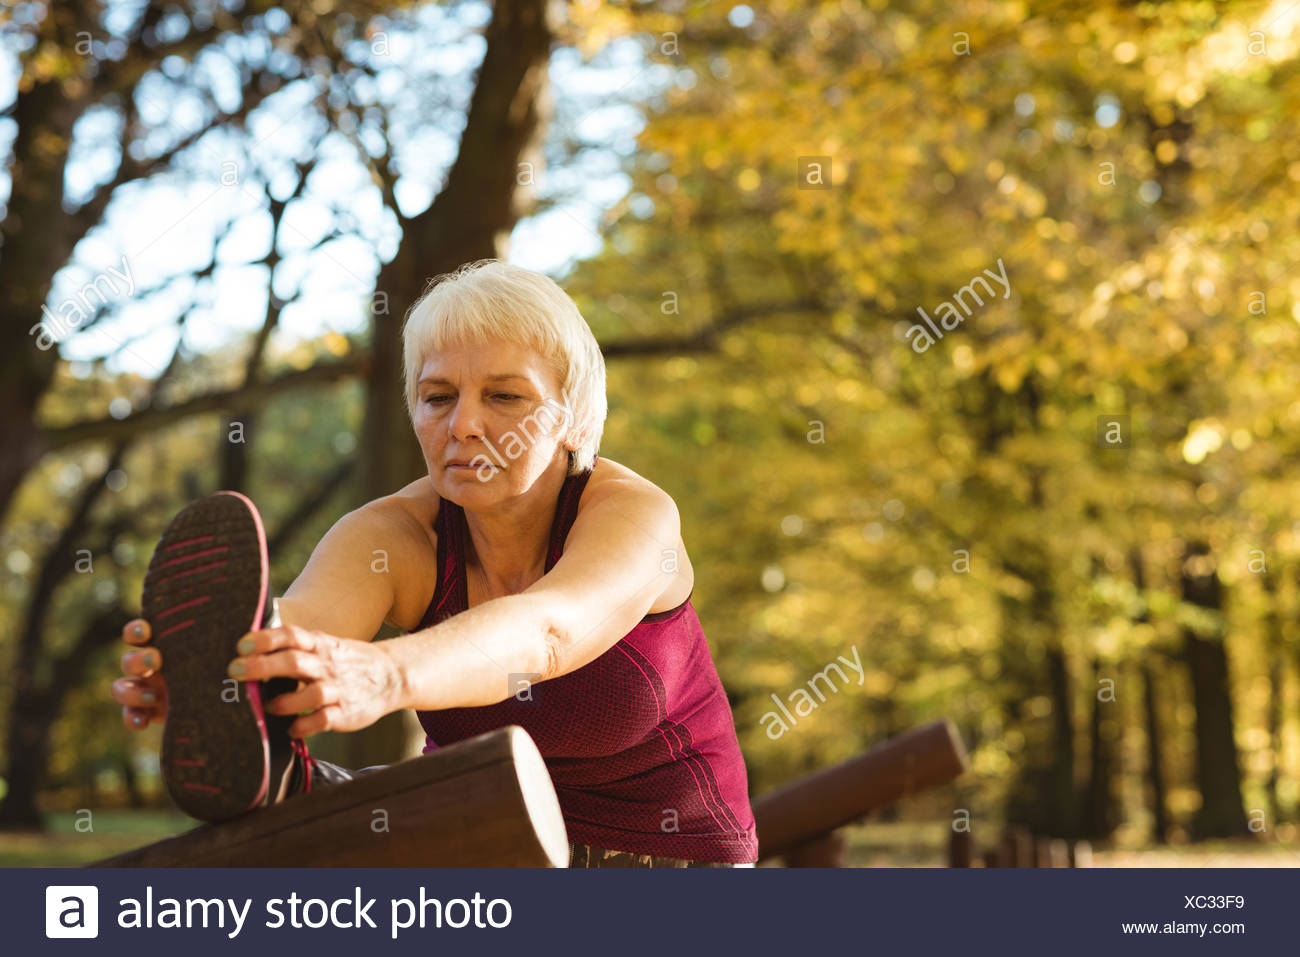 Senior woman performing stretching exercise in the park - Stock Image